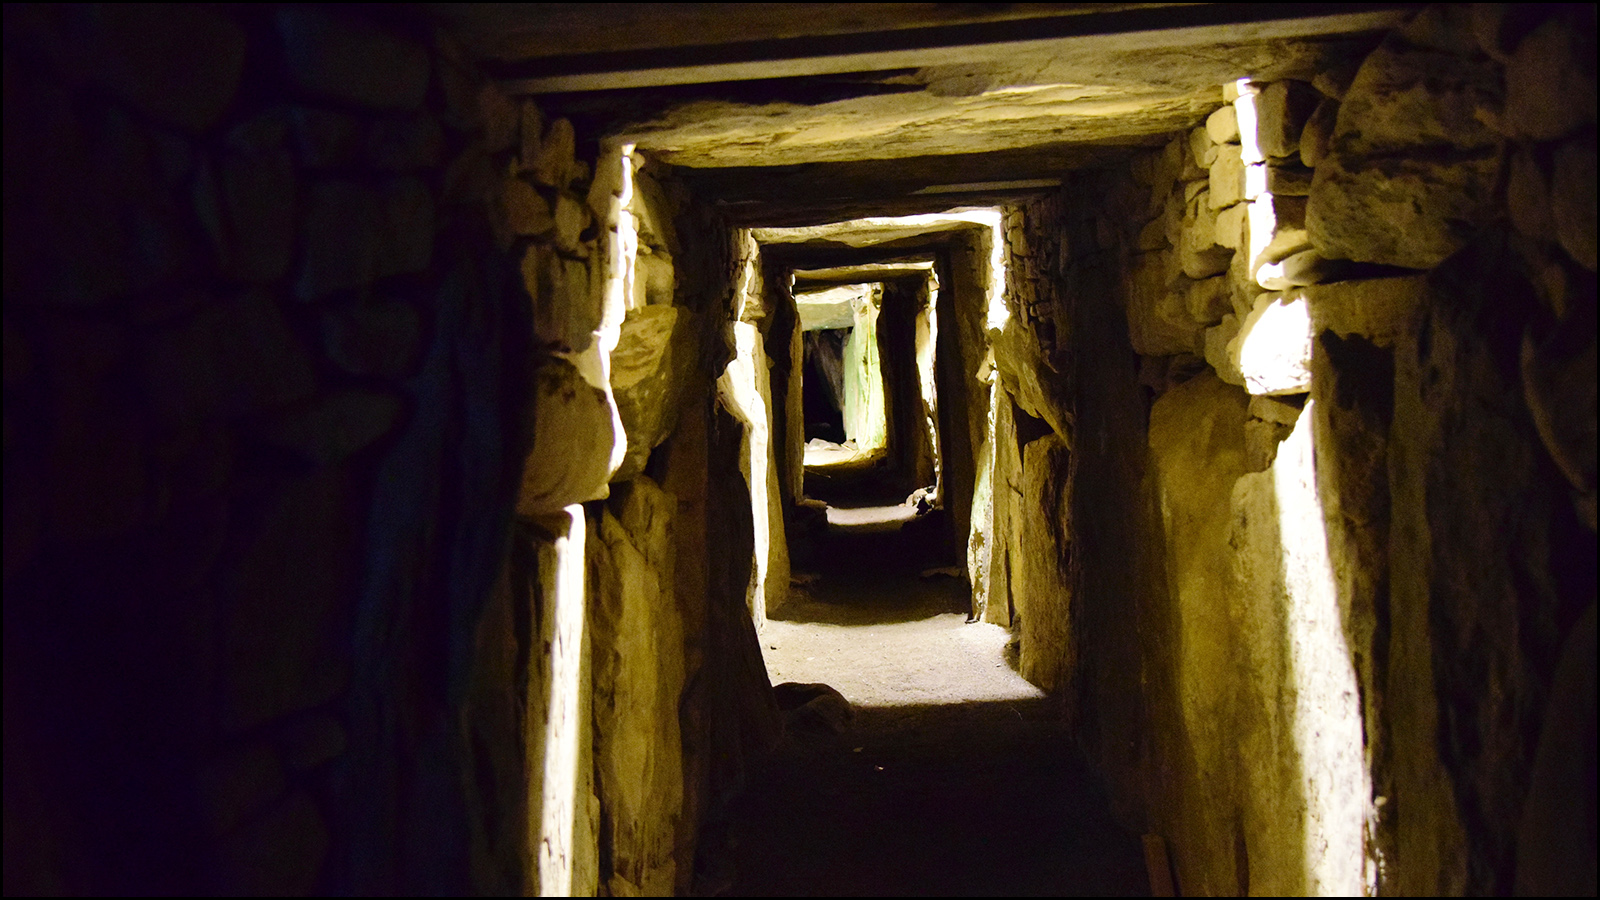 5000 year old passageway solstice chamber with Knowth (newgrange ireleand) have we really changed? (c) mark somple 2019